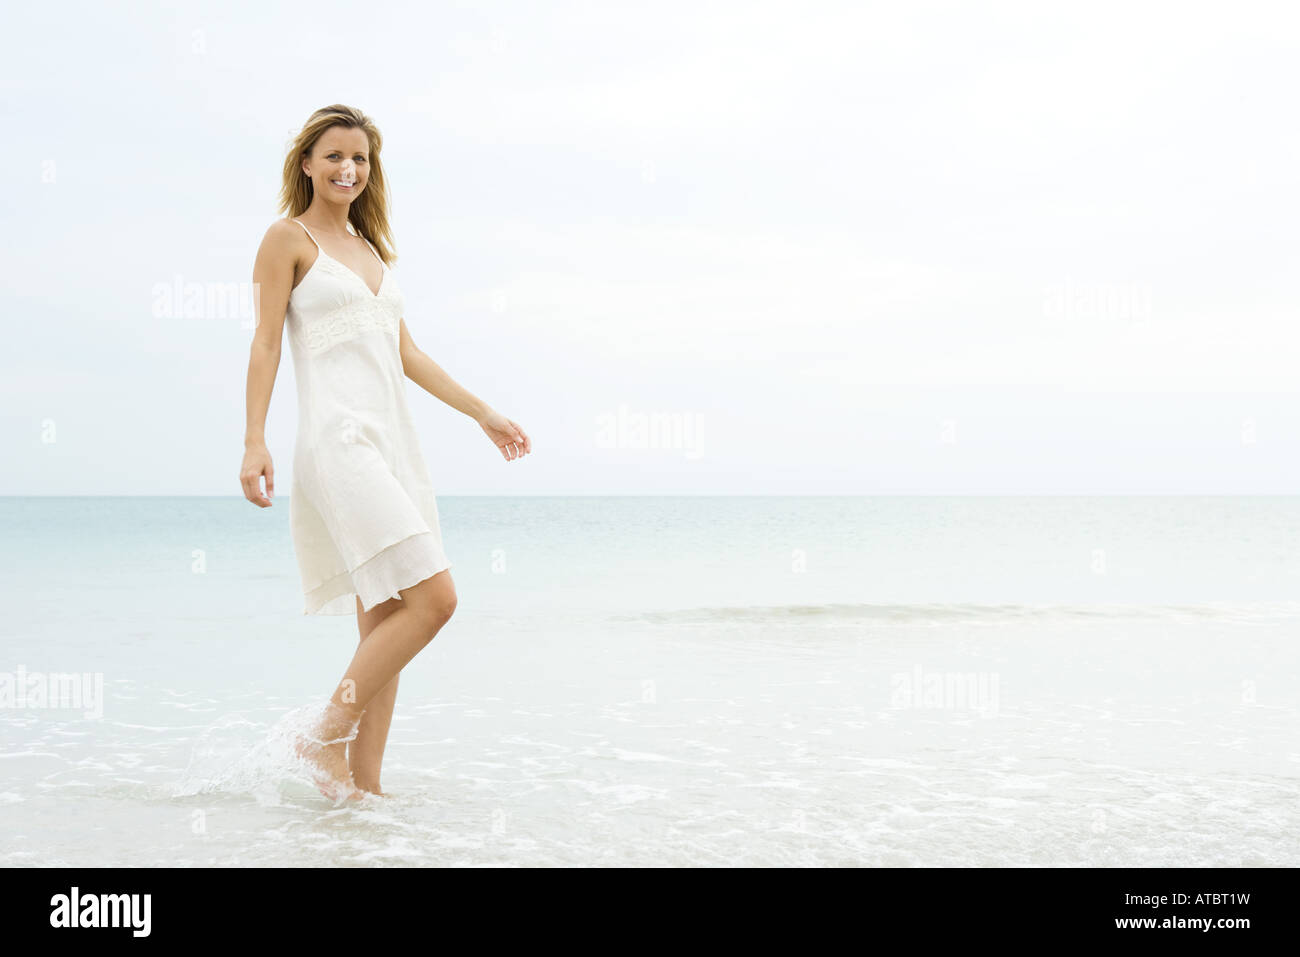 Young woman in sundress walking in shallow water, smiling at camera - Stock Image